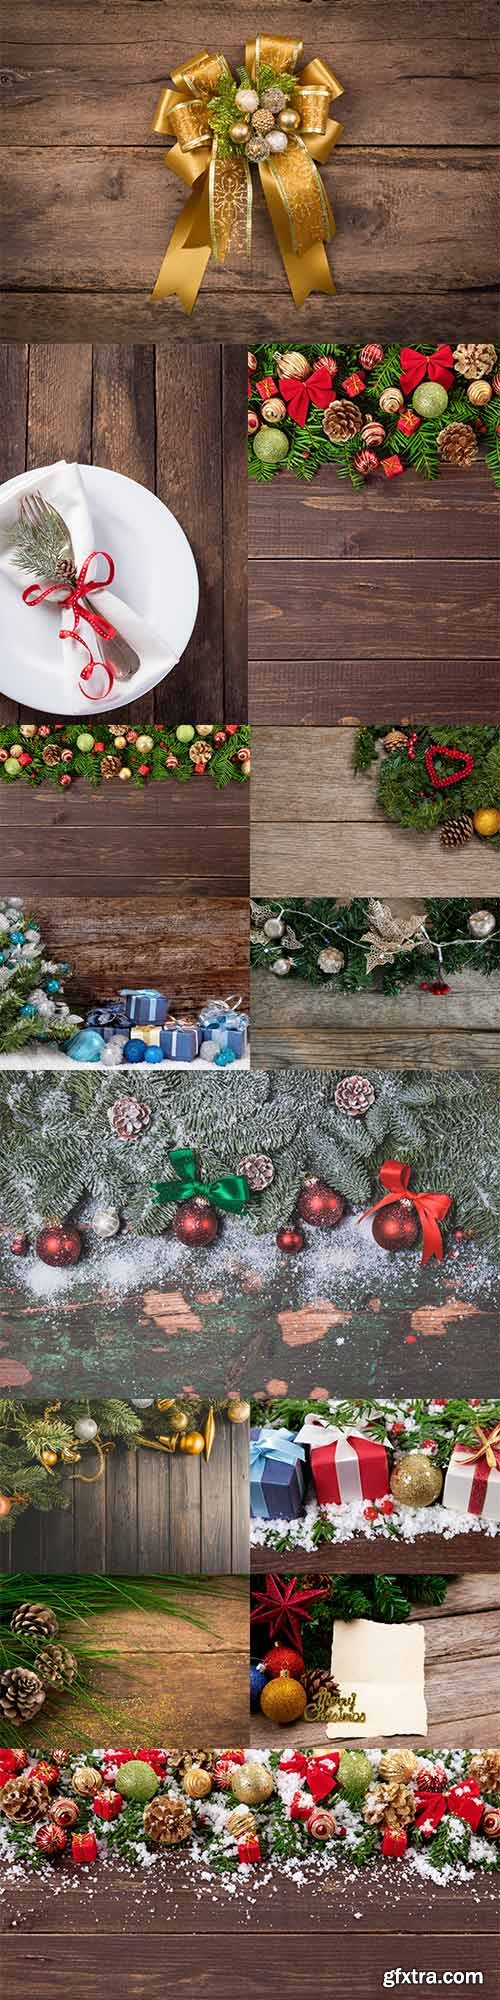 Wooden backgrounds with Christmas decorations 2